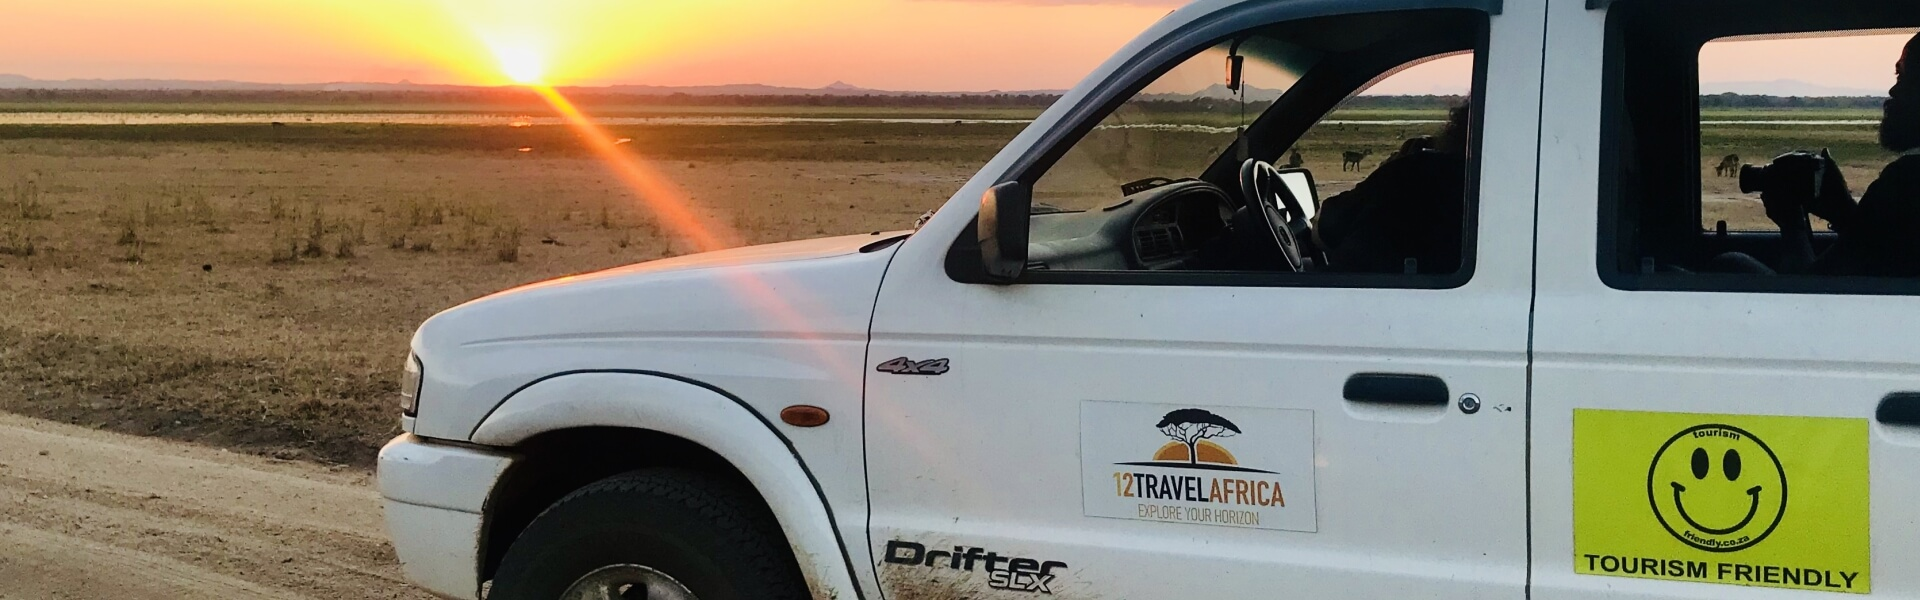 The car of 1 2 Travel Africa at sunset